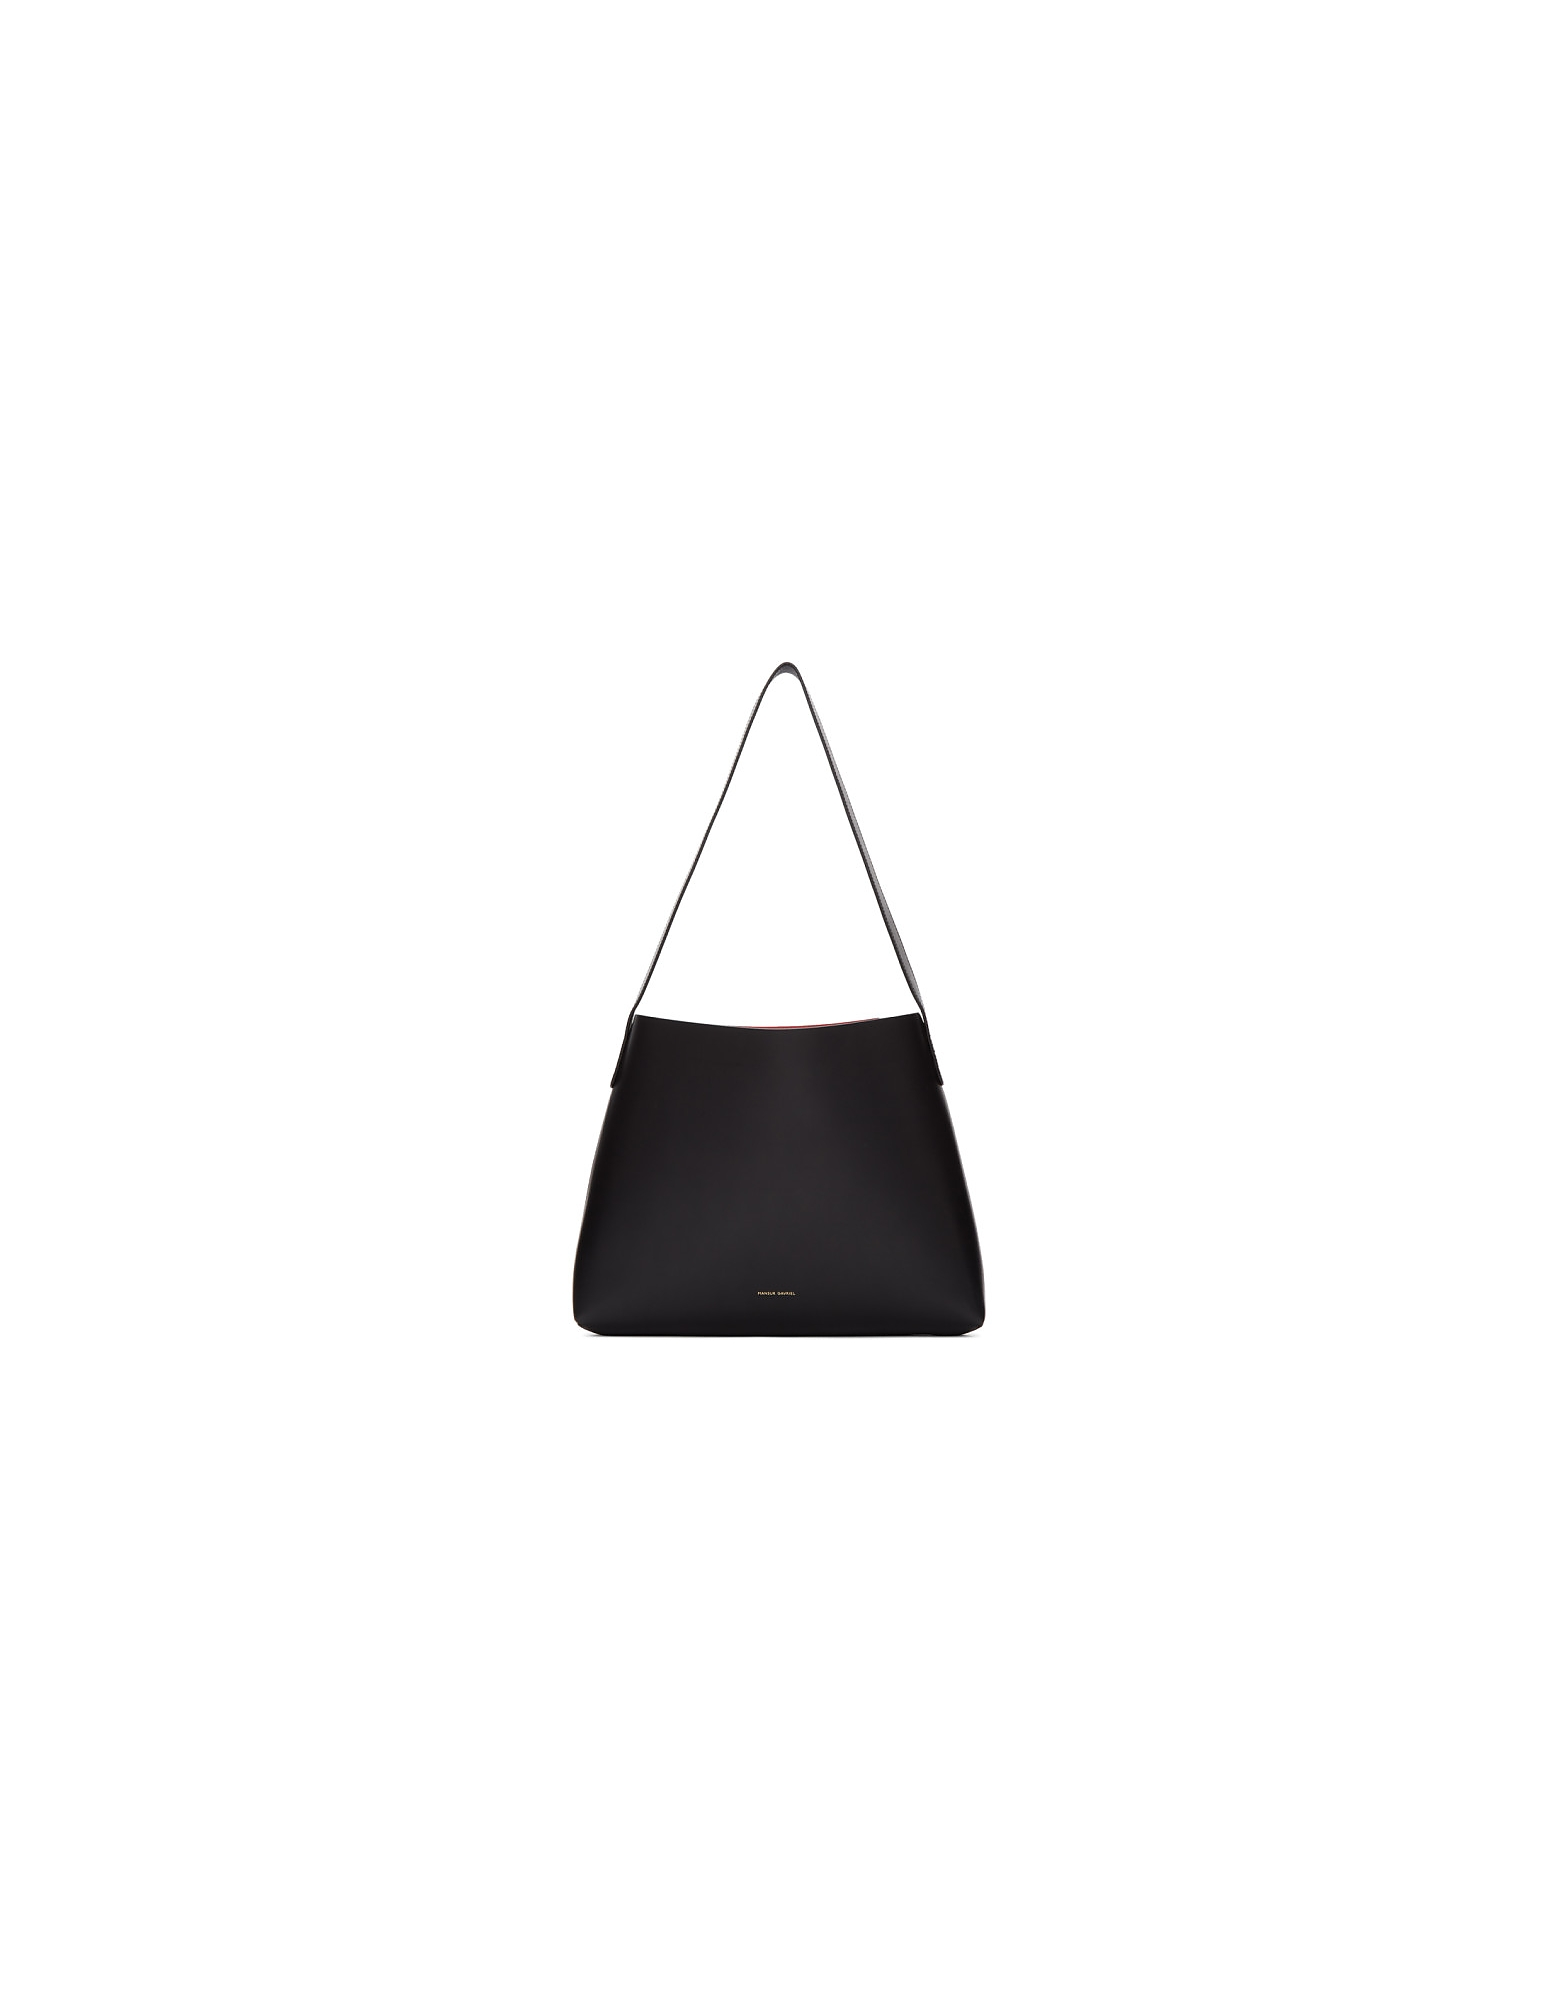 Mansur Gavriel Designer Handbags, Black Small Hobo Tote